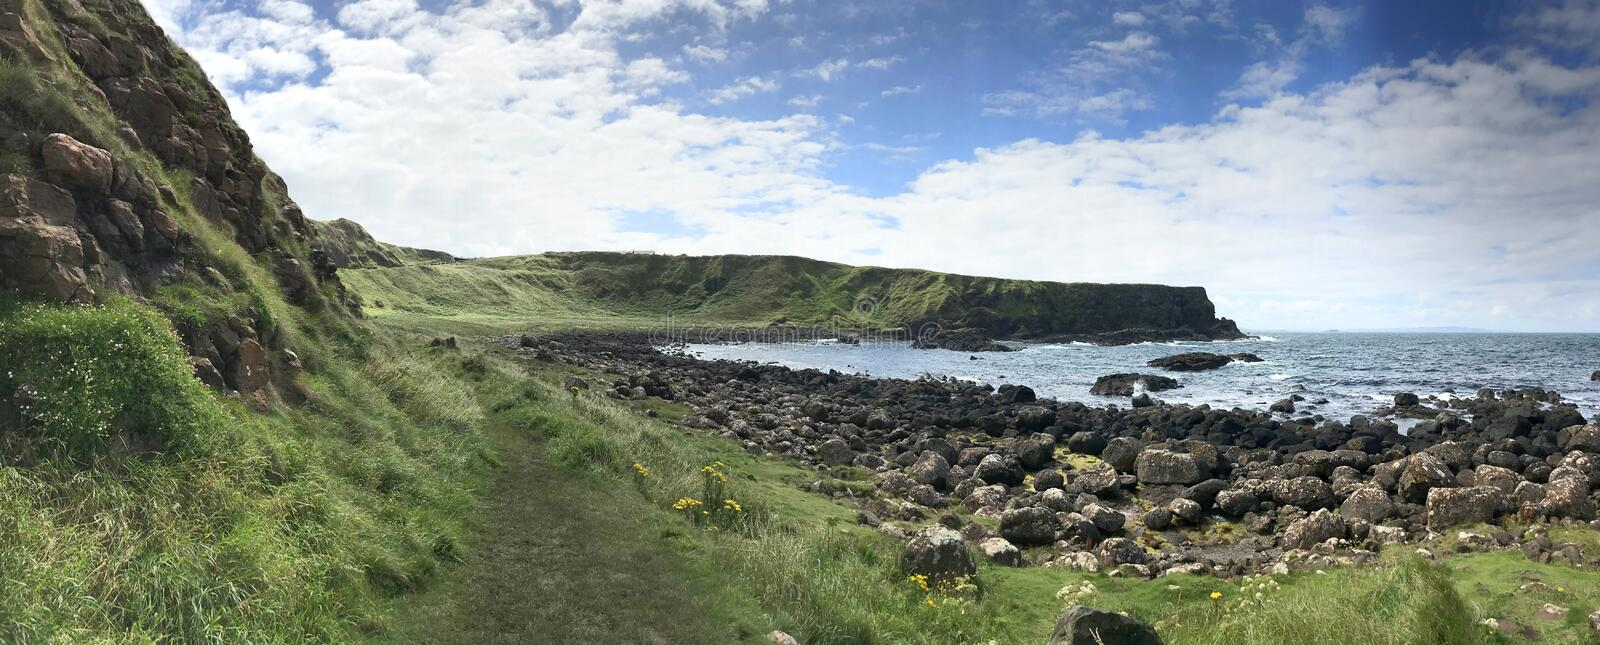 Giant`s Causeway in Norther Ireland, Europe. Giant`s Causeway in Northern Ireland, Europe landscape royalty free stock images